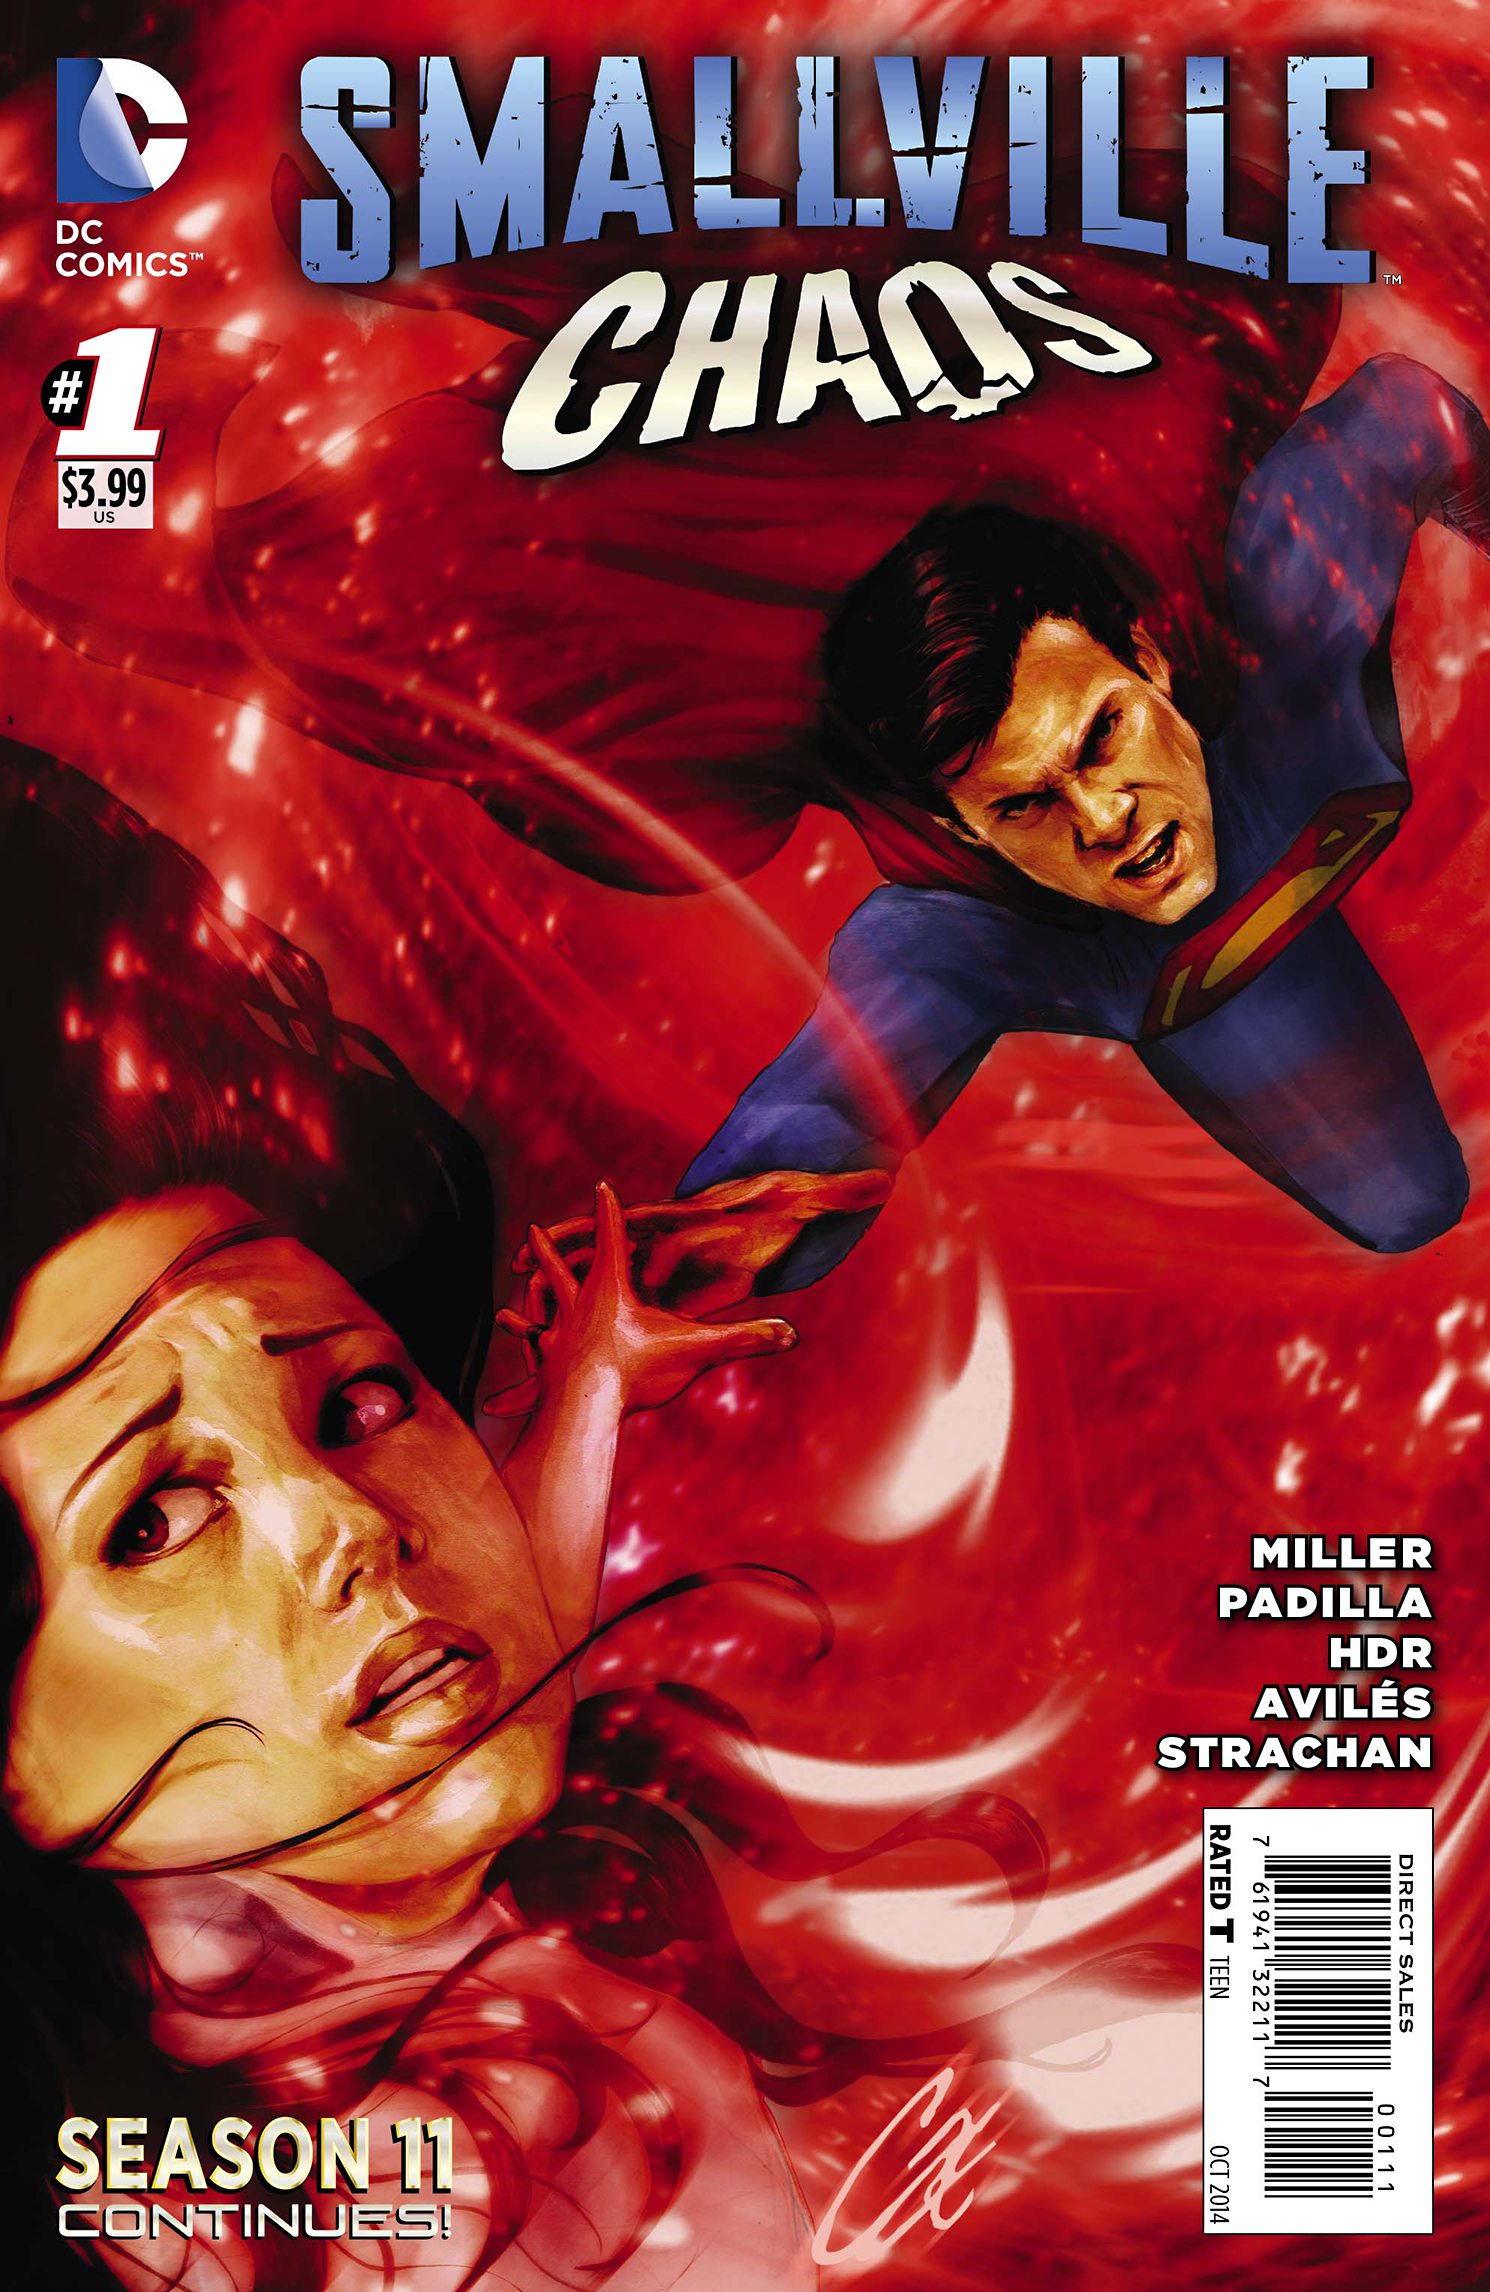 SMALLVILLE SEASON 11 CHAOS #1